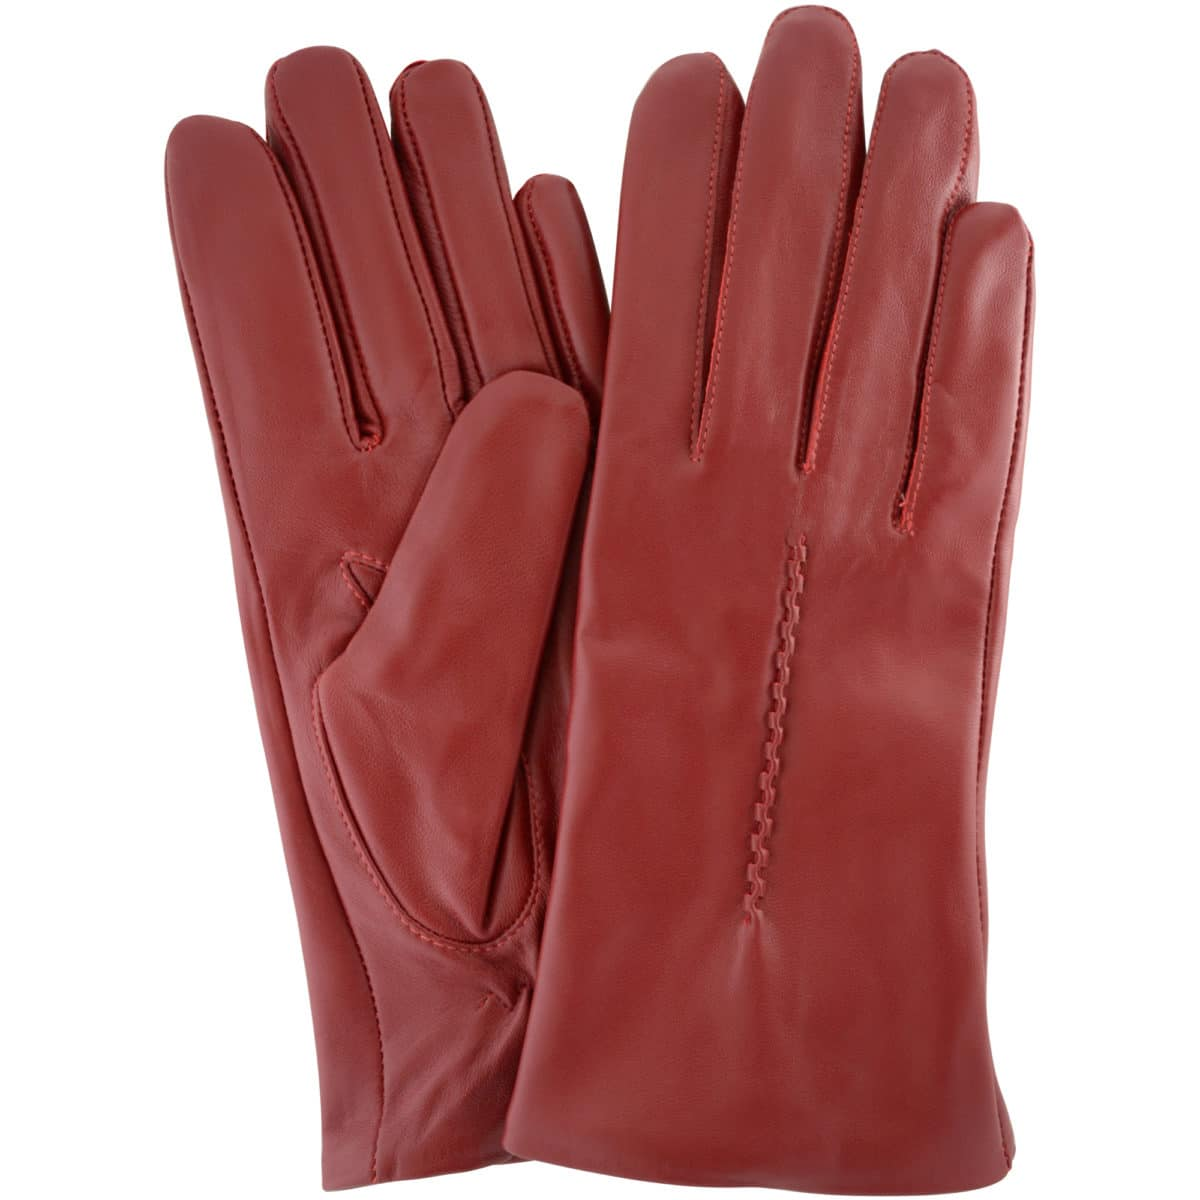 5f6b5d79ad364 Catrin - Leather Gloves Twisted Central Stitch - Red